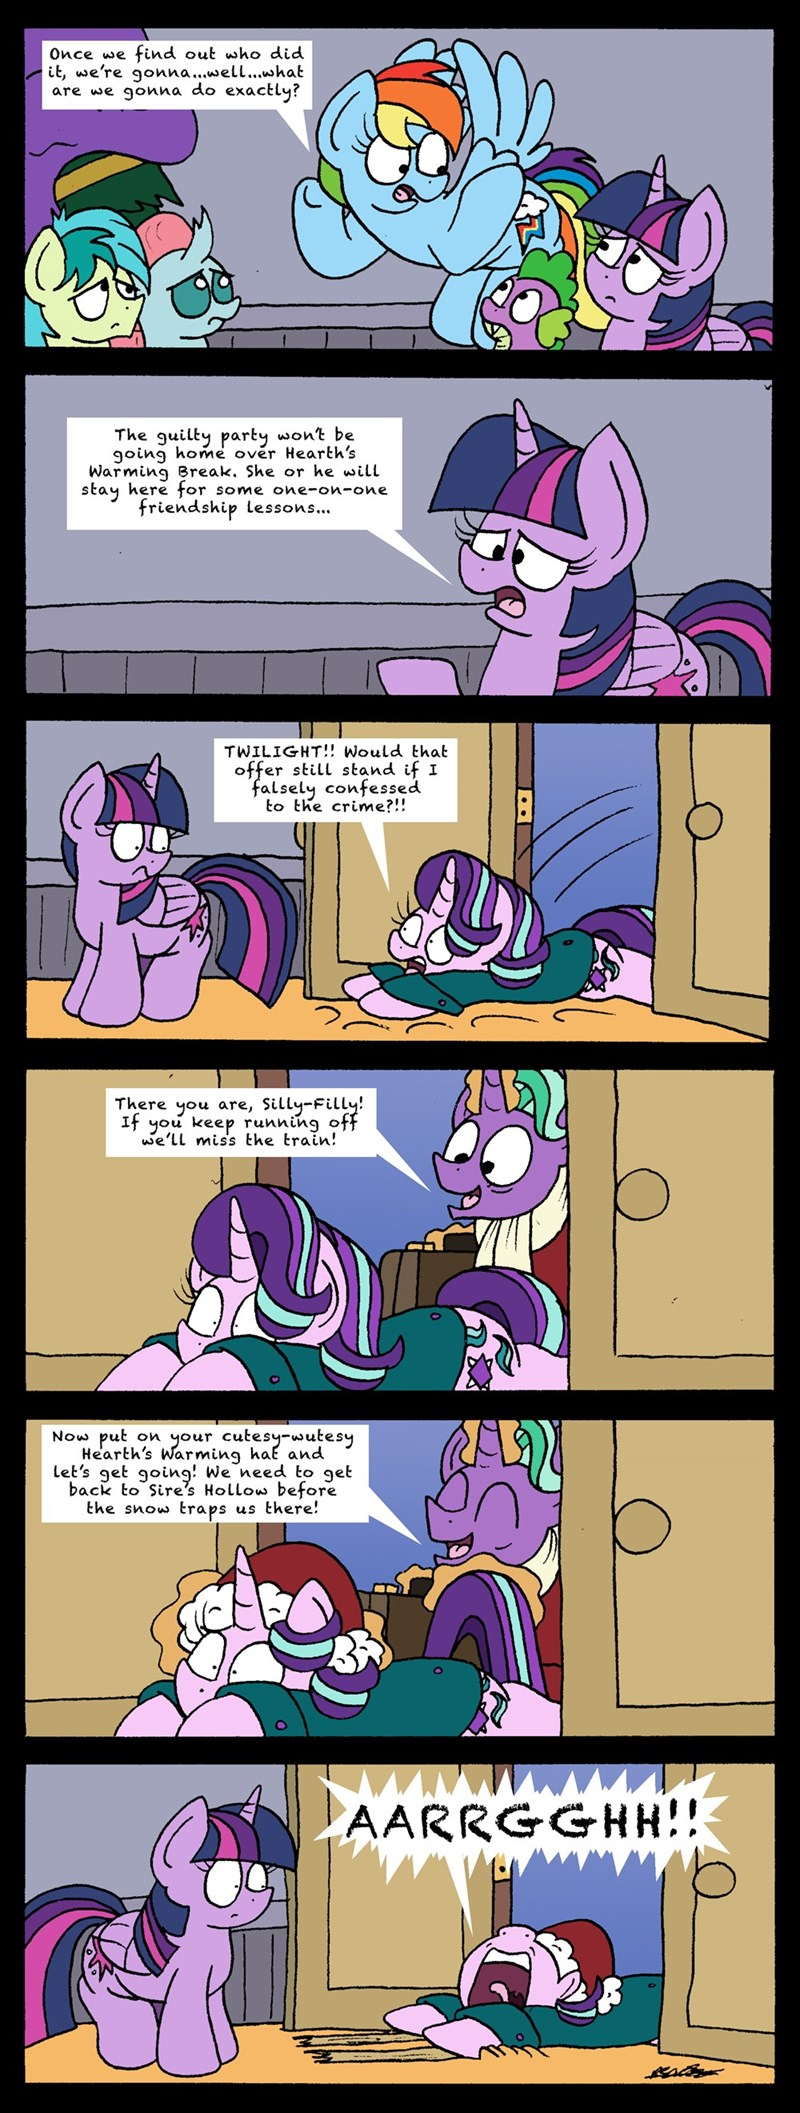 firelight bob the dalek starlight glimmer twilight sparkle comic the hearth's warming club rainbow dash - 9198792960